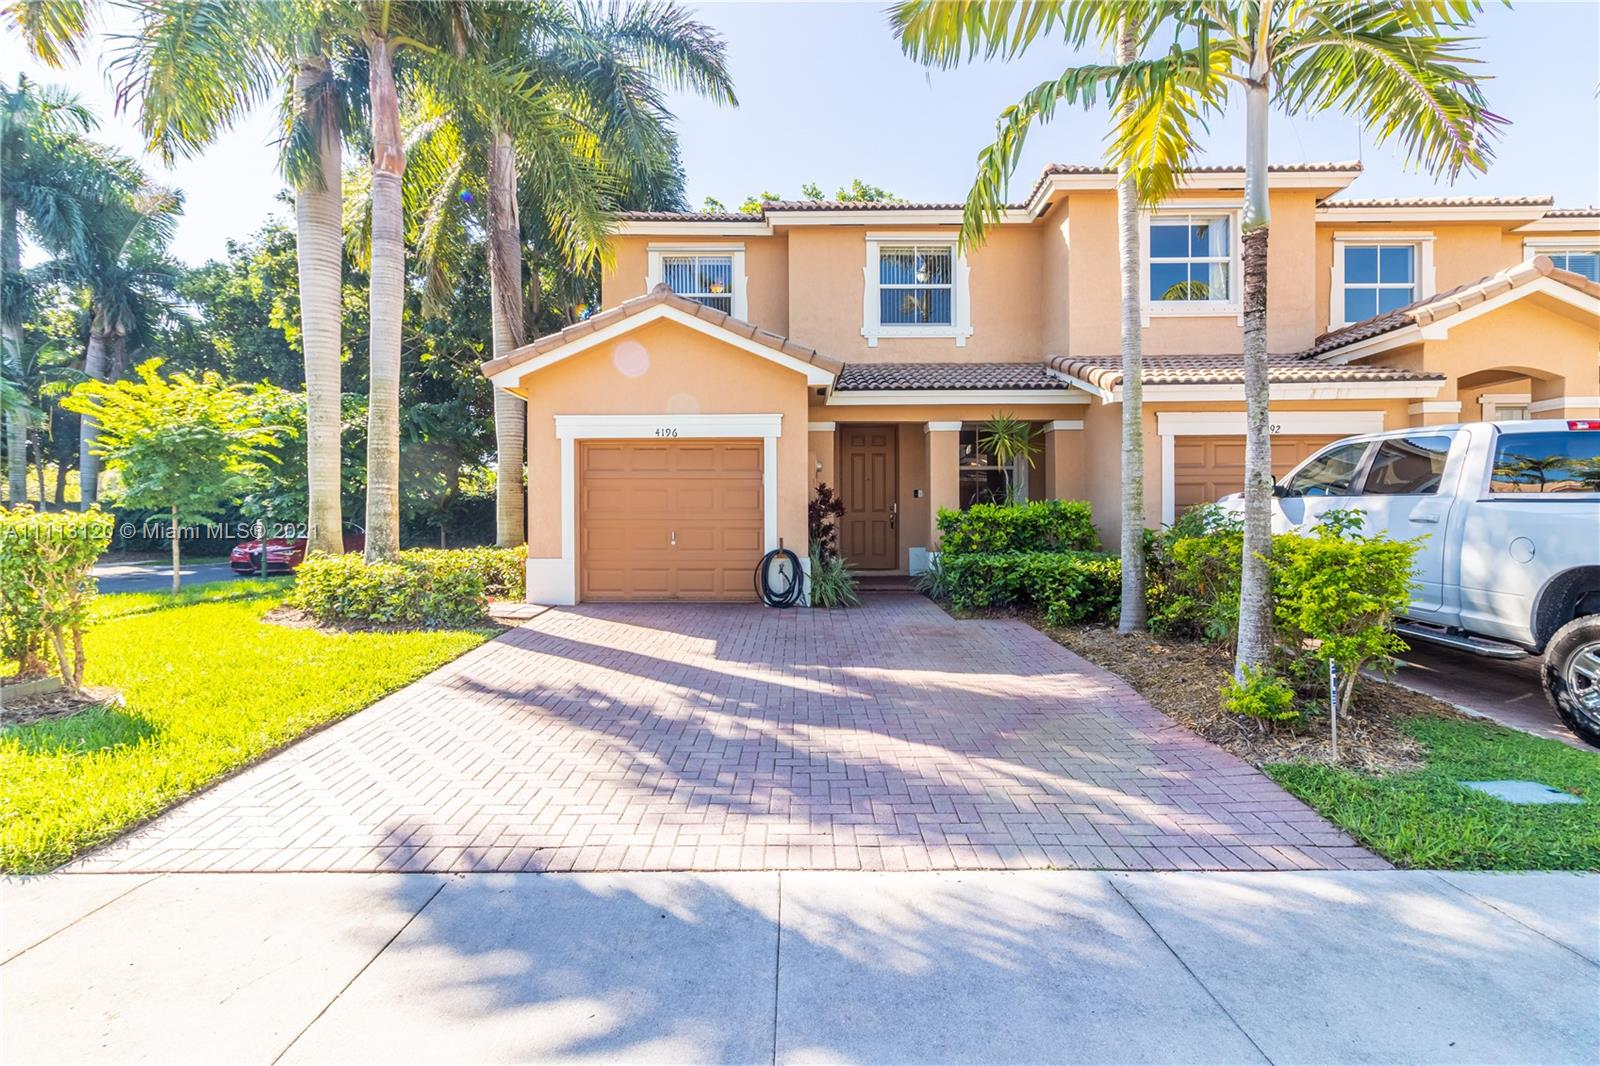 Condo For Sale at FLORIDIAN ISLES SOUTH